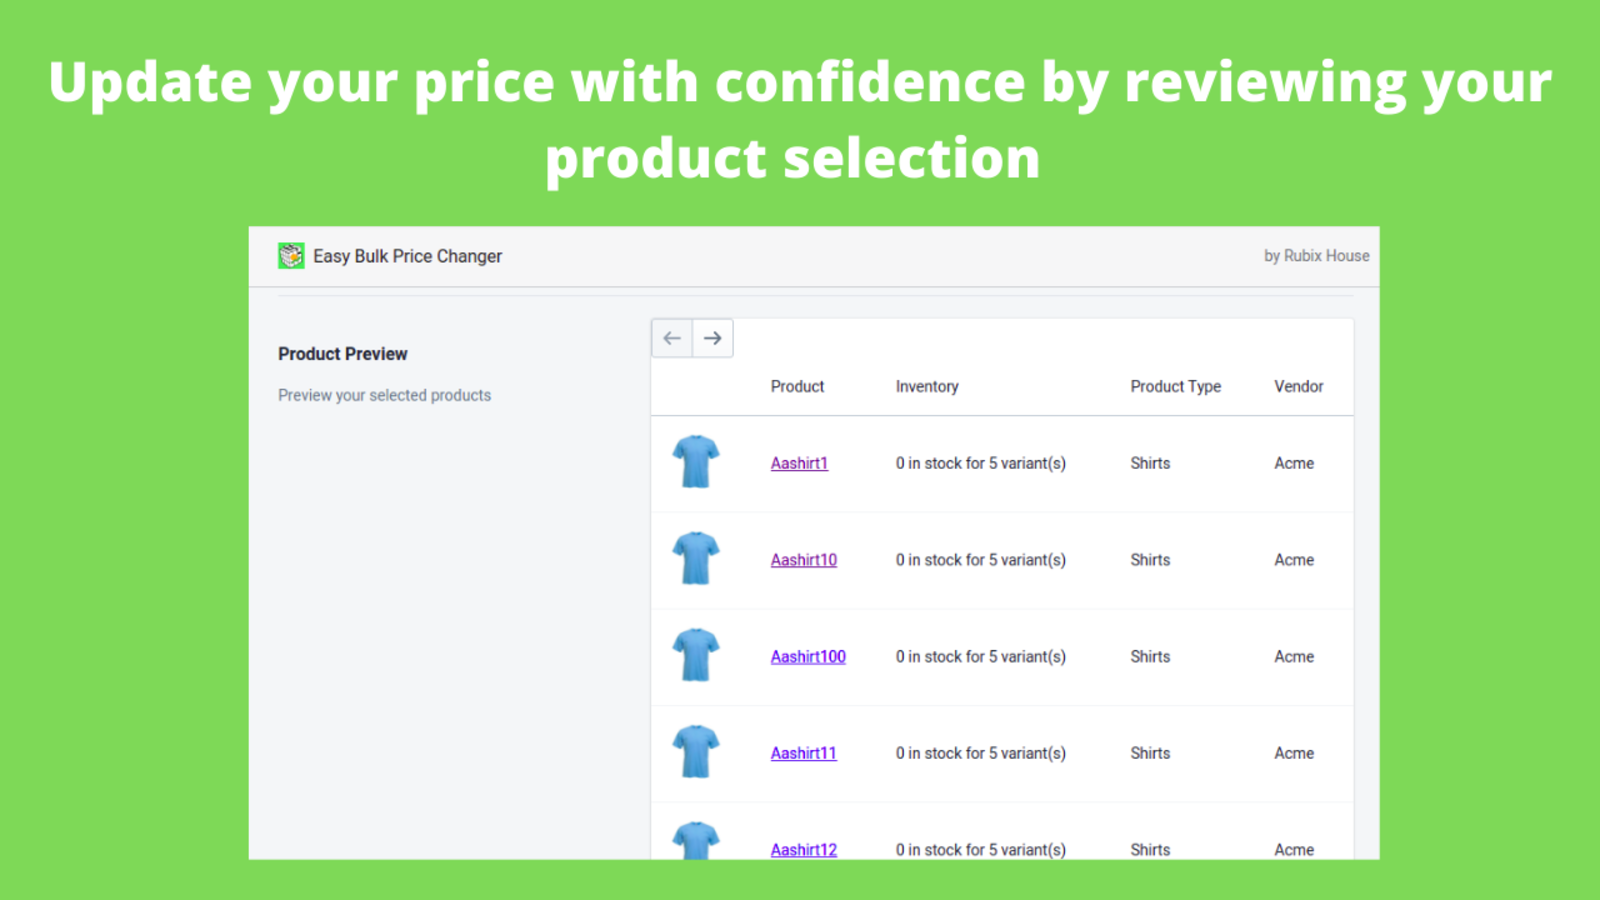 update your price with confidence by reviewing your selection